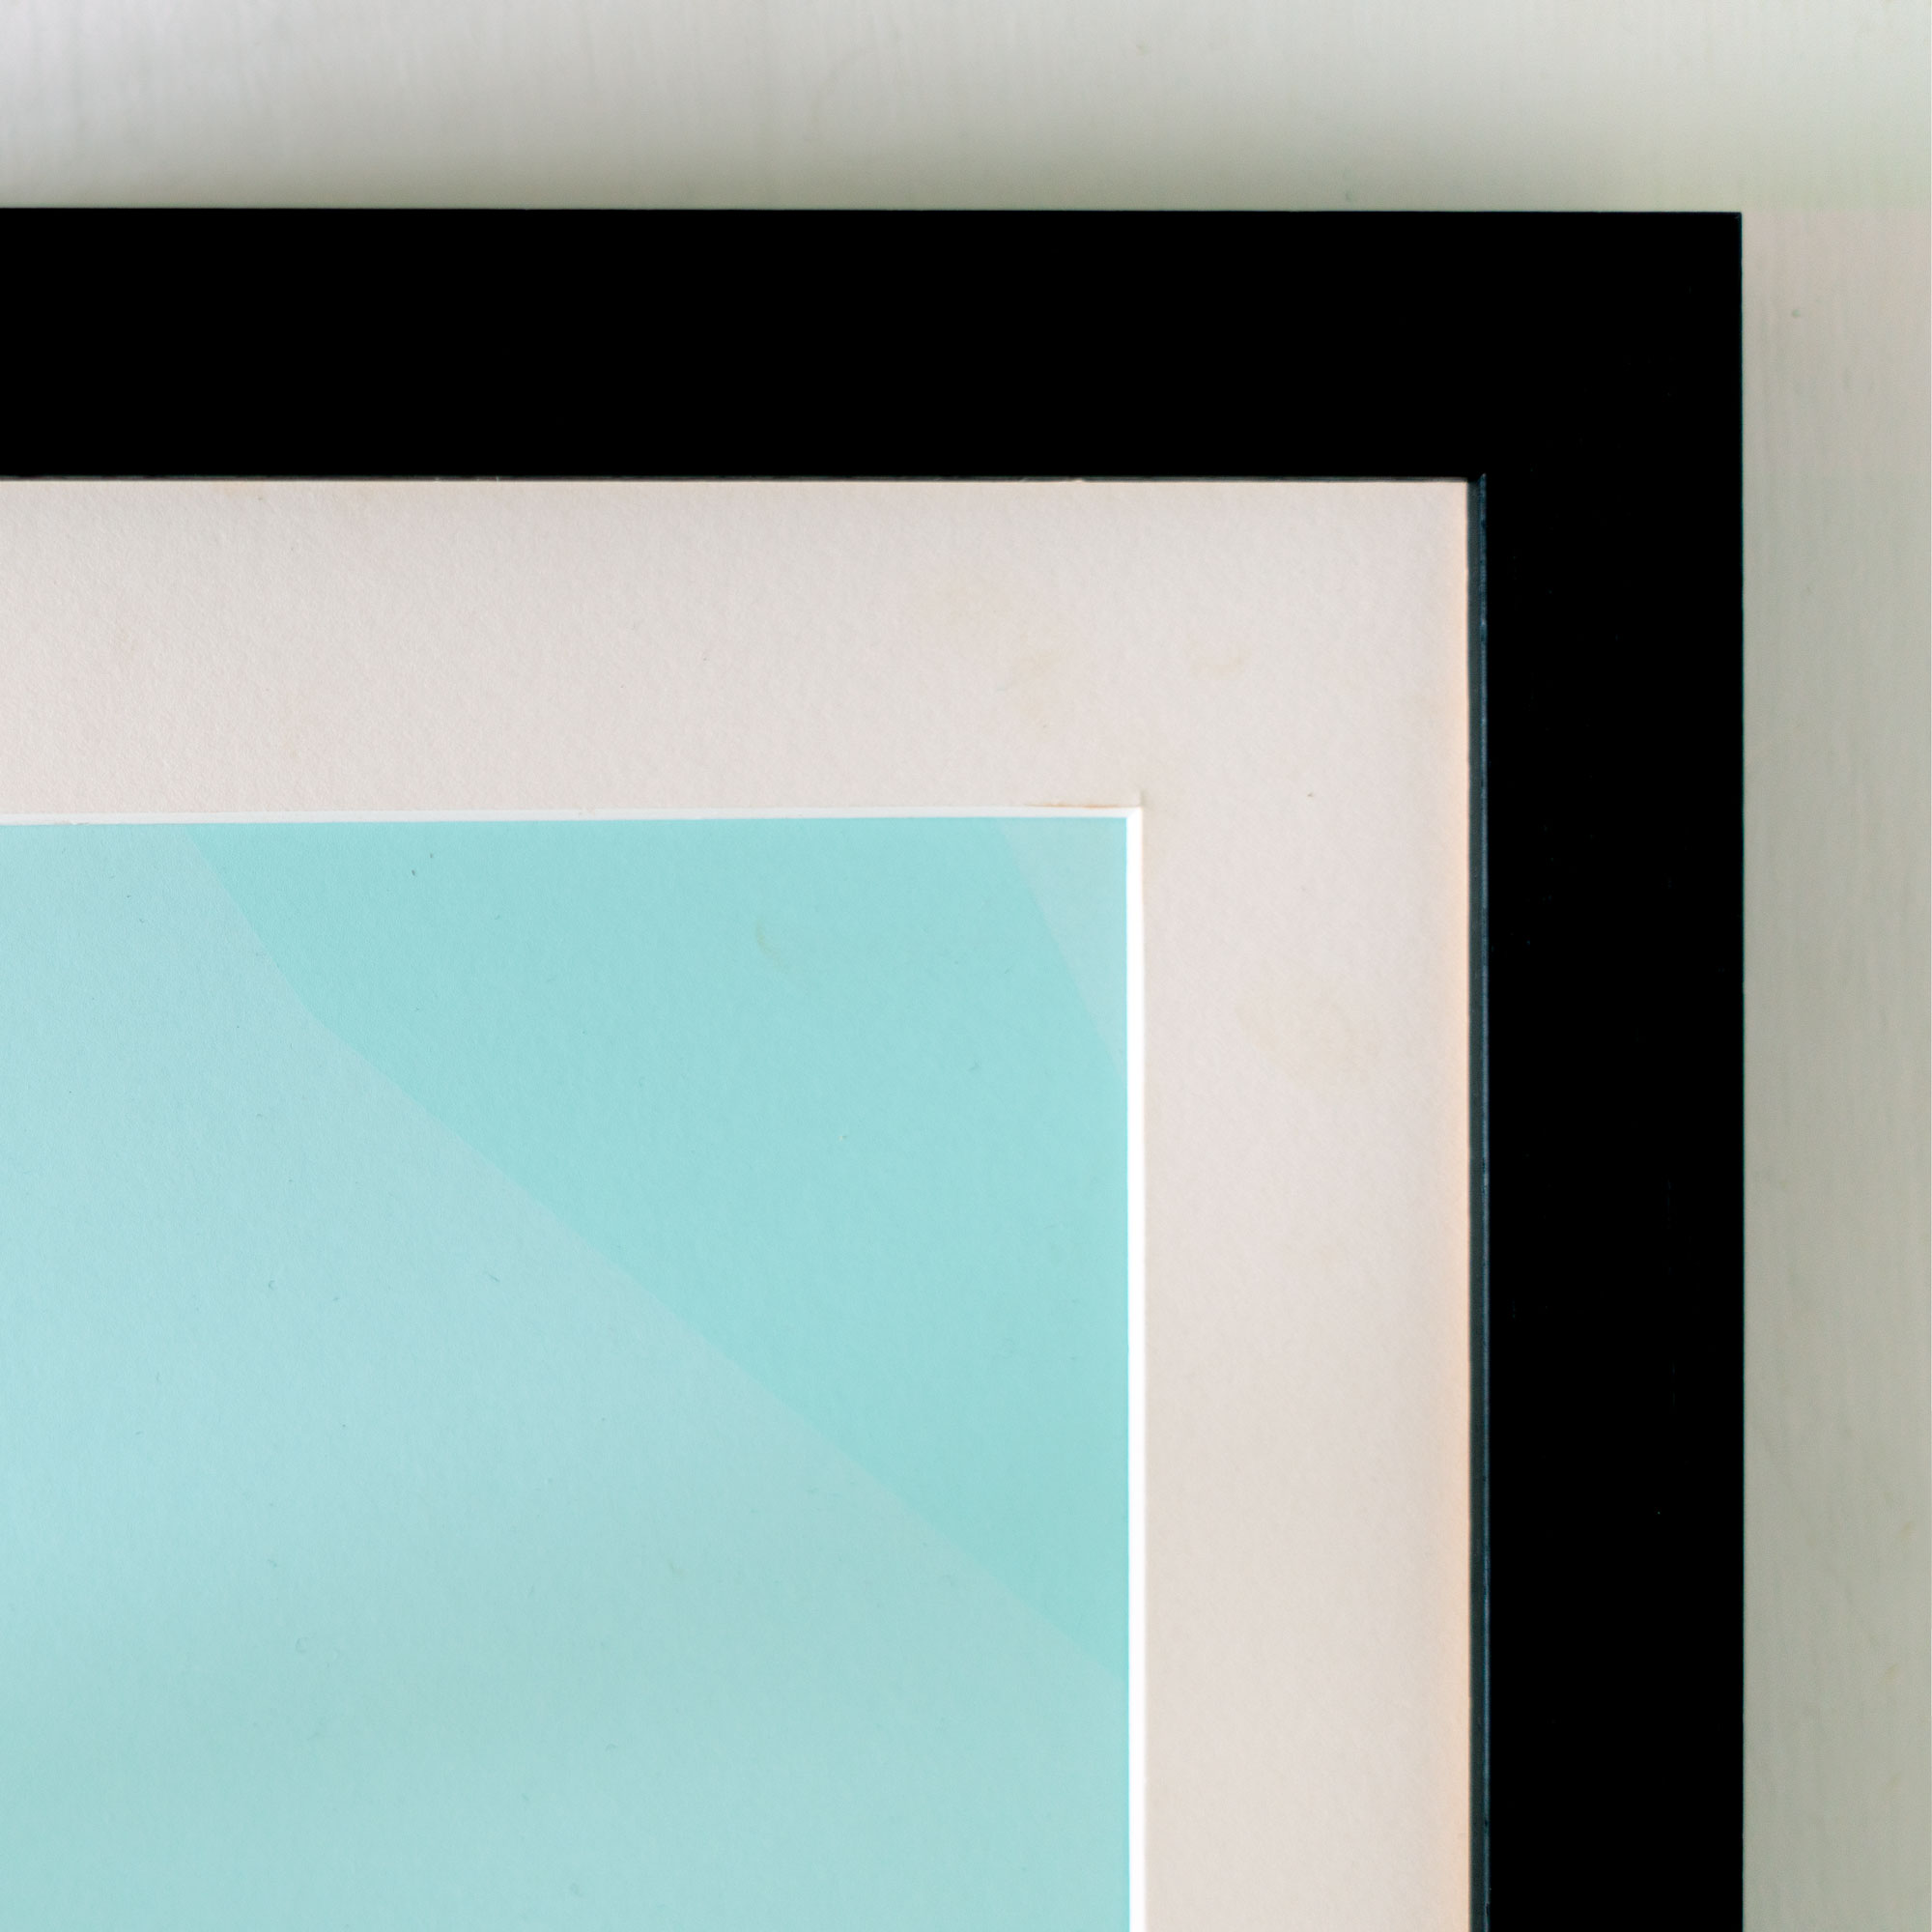 Mount Frame - Boarder your art with a mount of your choice